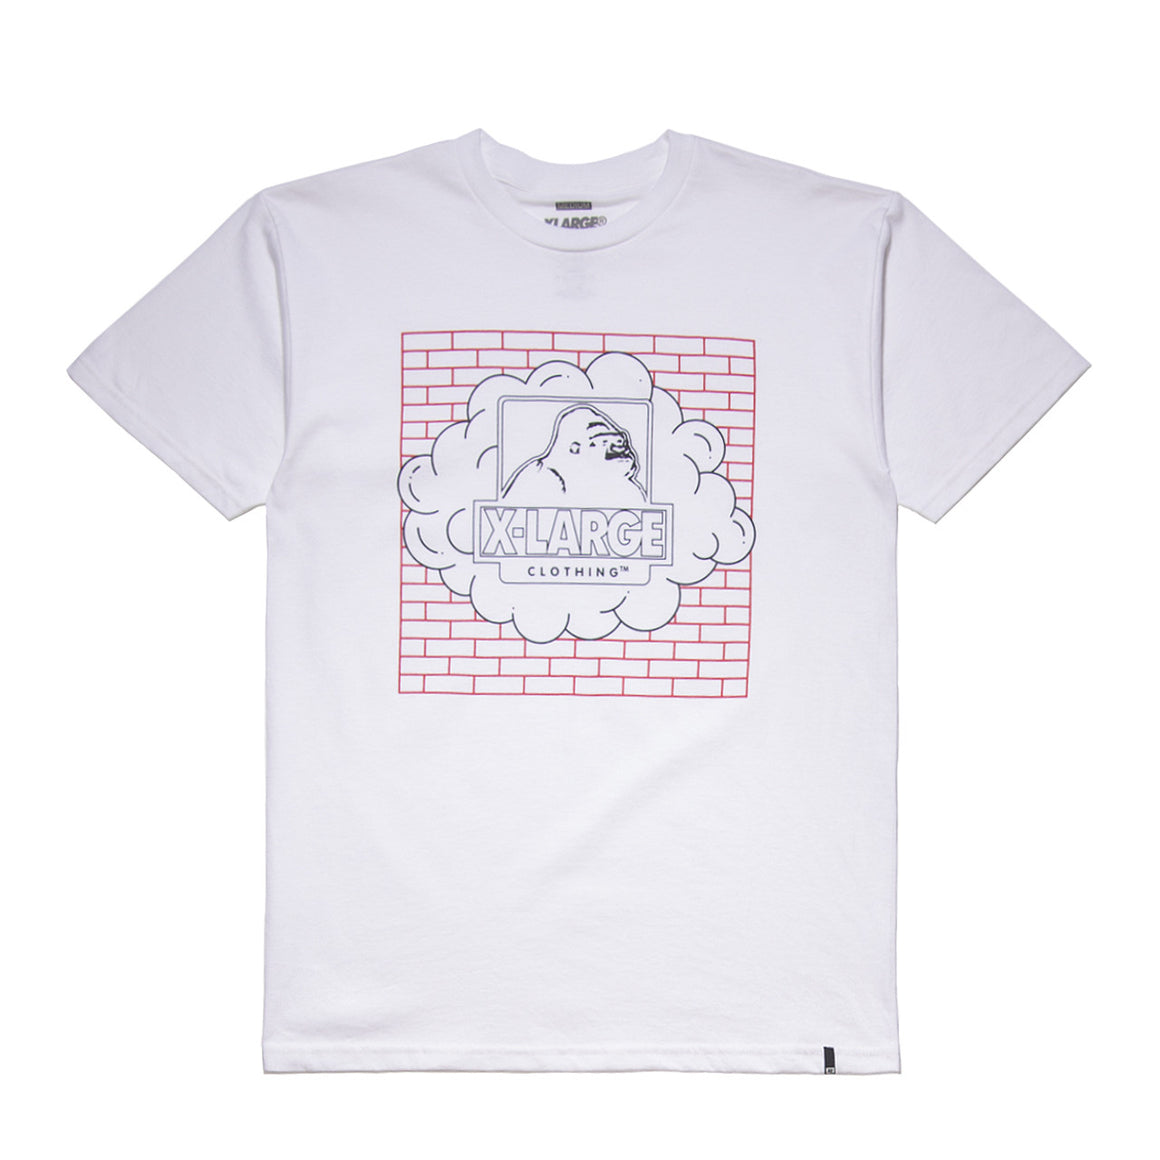 SMOG SS TEE - X-Large Clothing